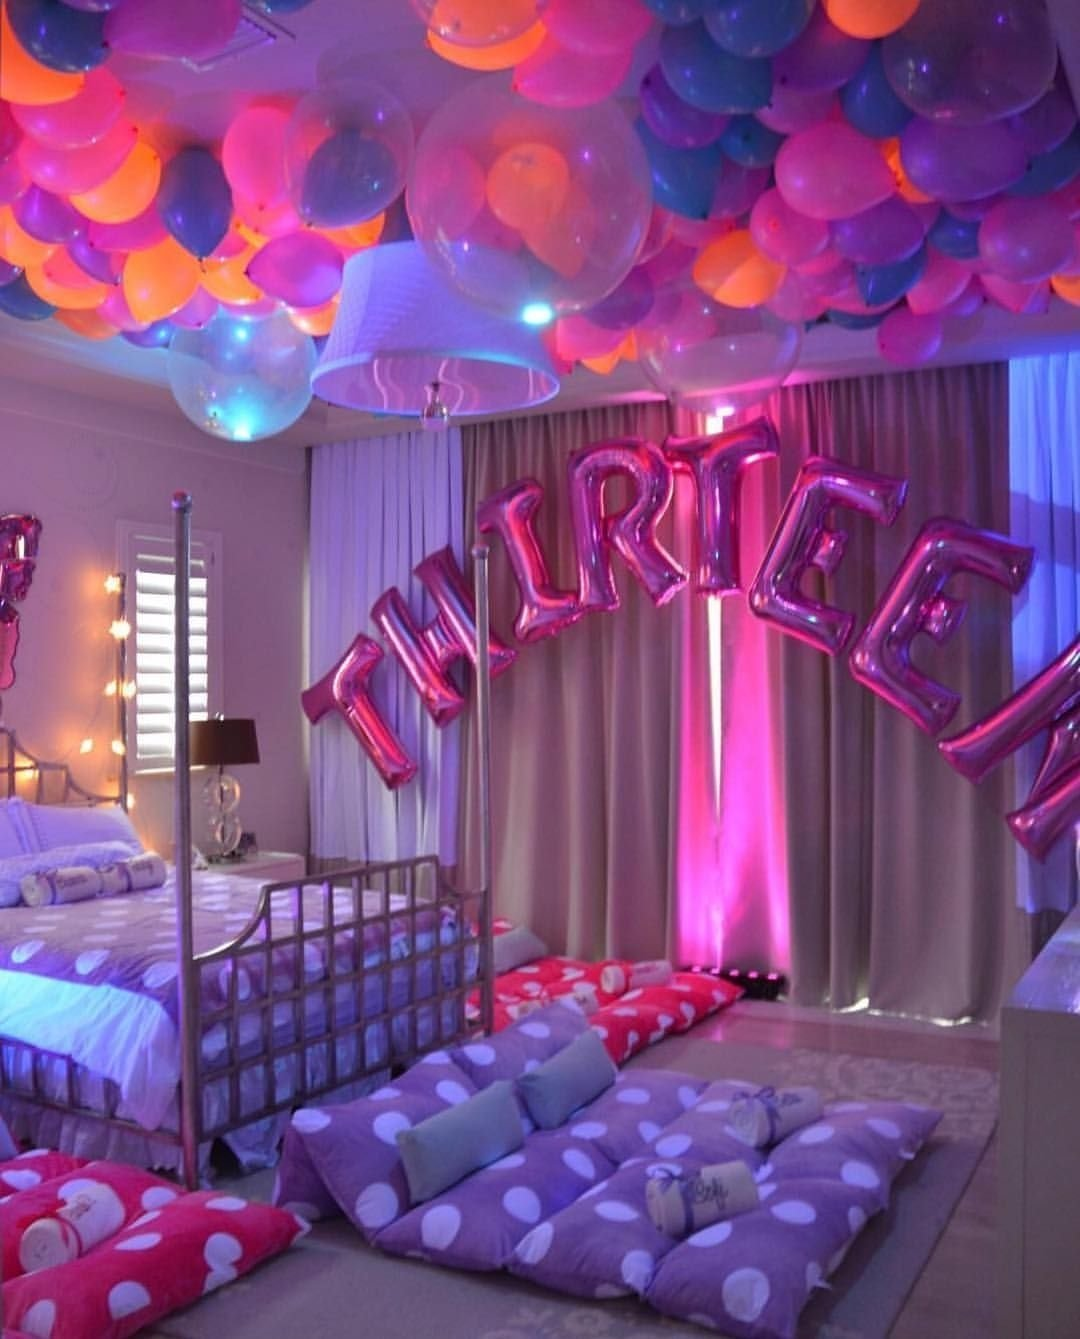 10 Spectacular Birthday Party Ideas For 13 Year Old Girl the cutest birthday look for a 13 year old girlcenter stage 1 2020